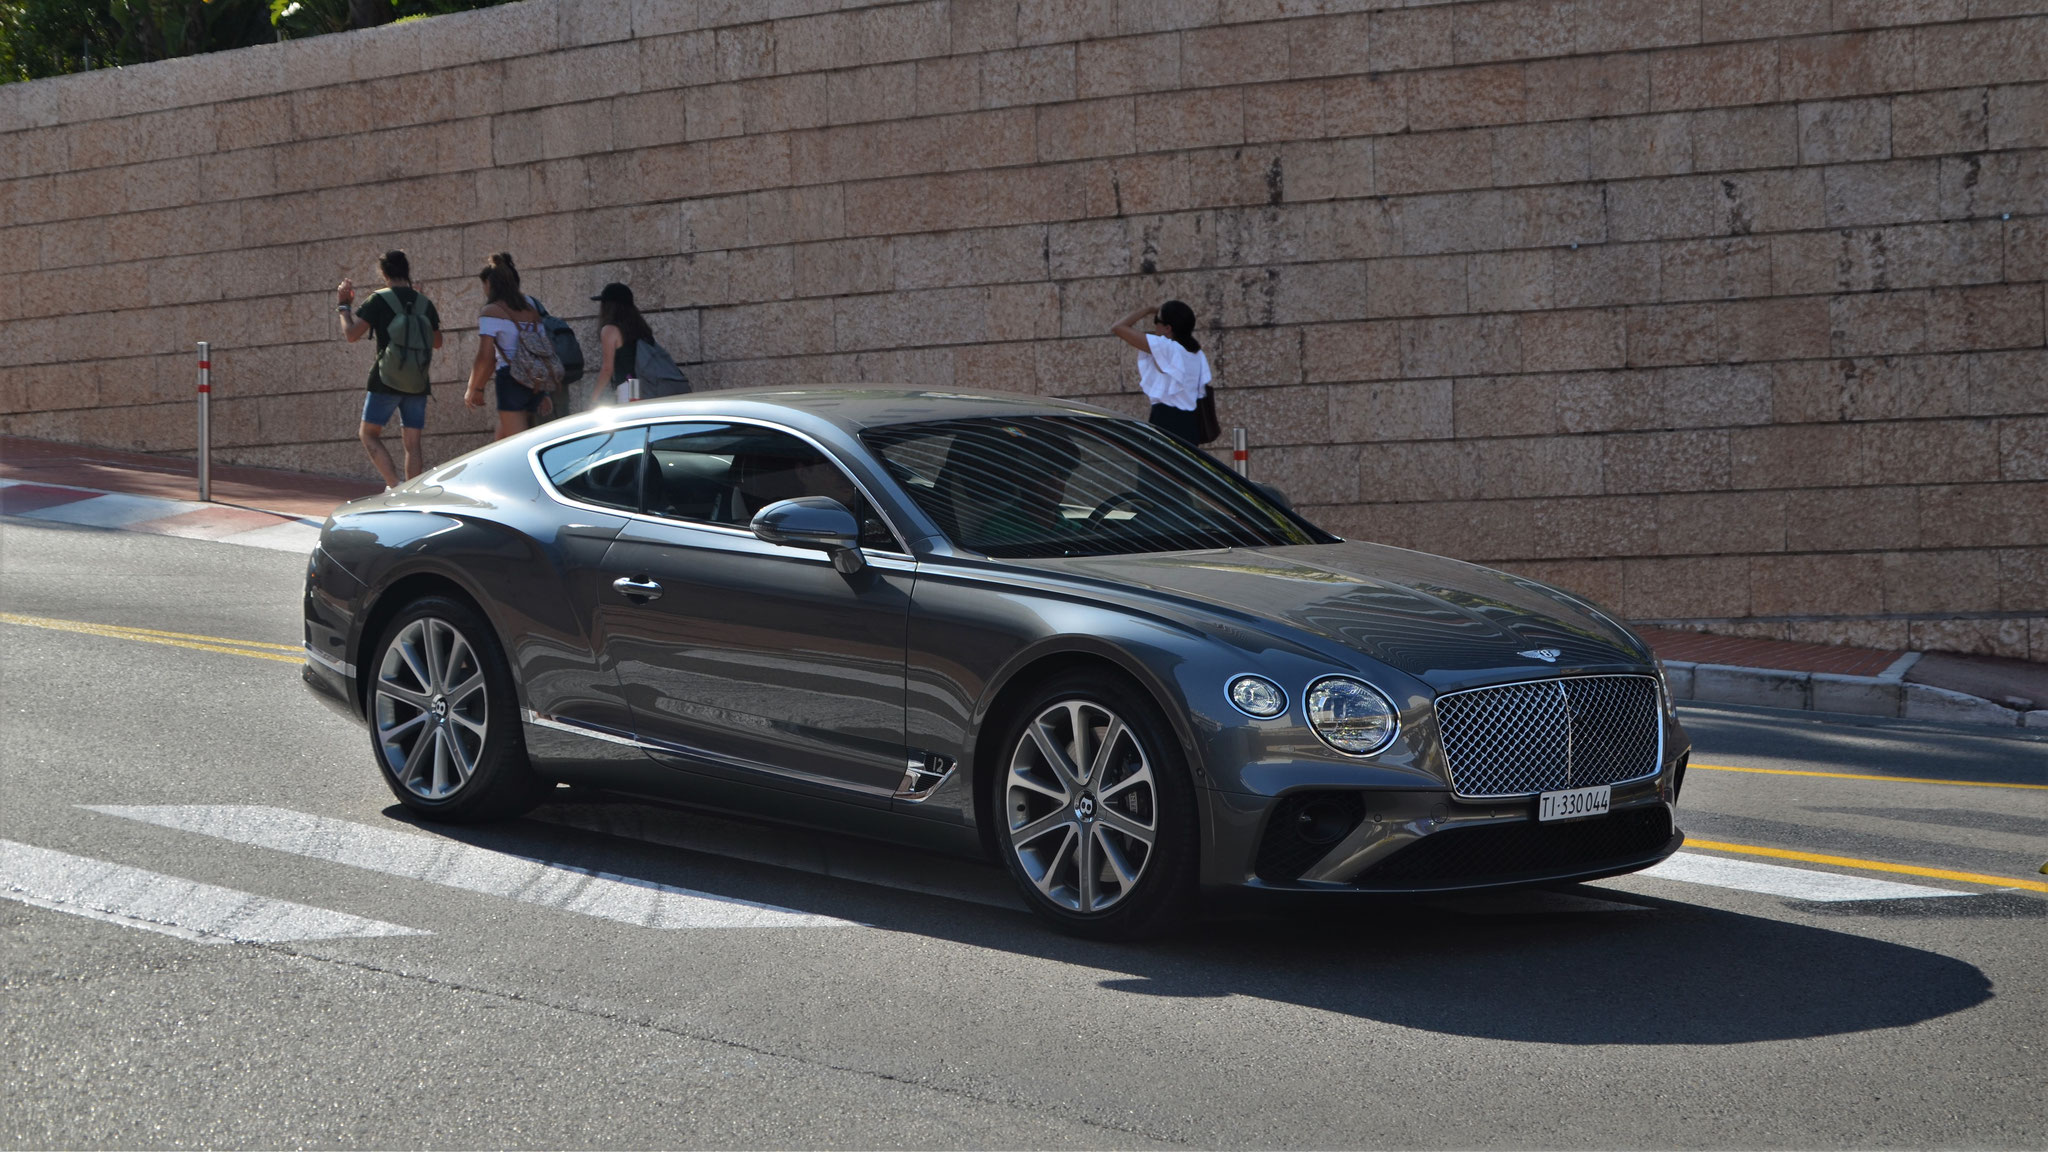 Bentley Continental GT - TI-330044 (CH)